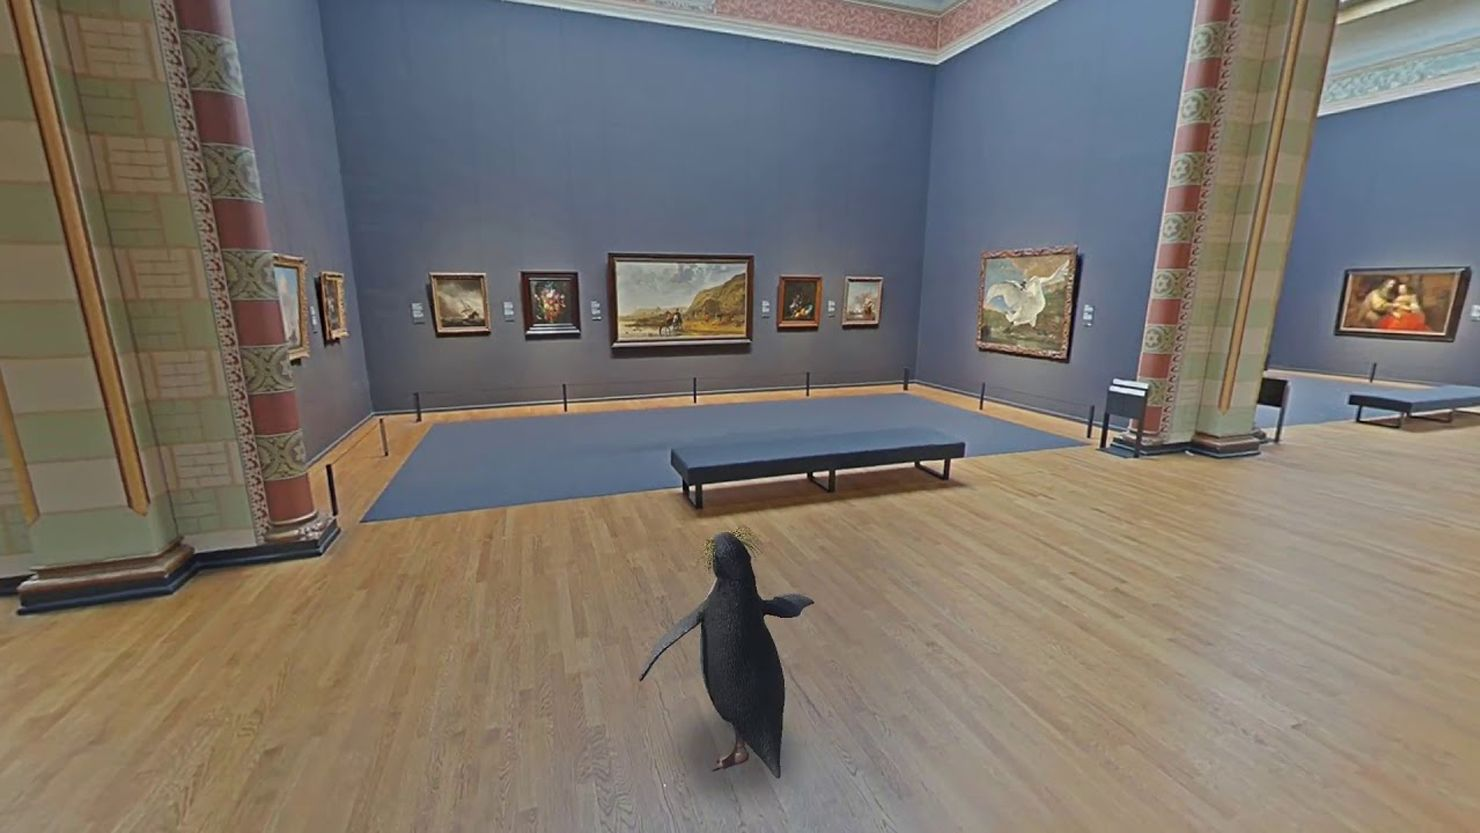 Virtual penguin tour of the Rijksmuseum